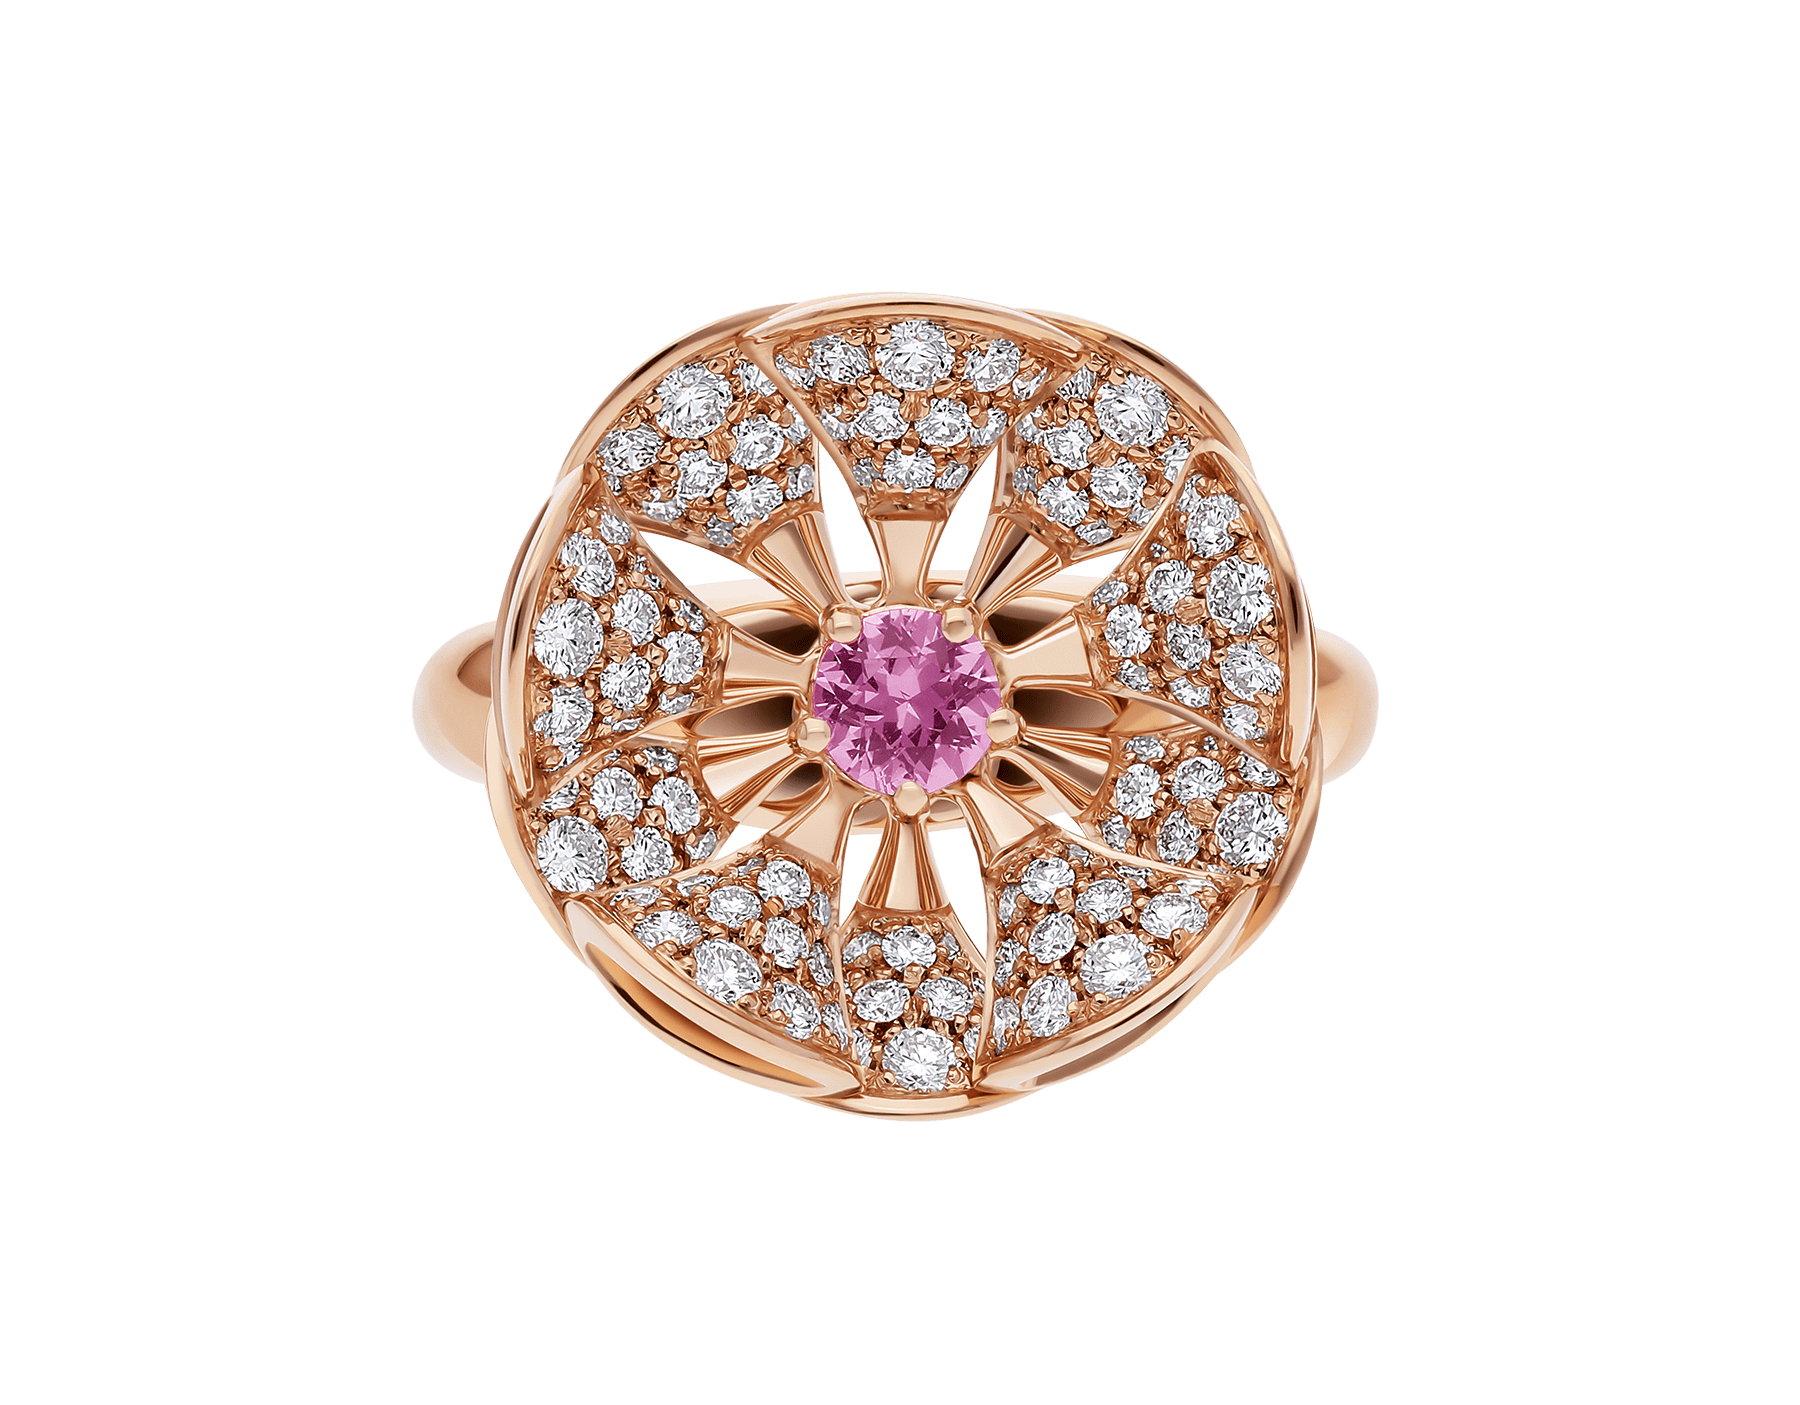 DIVAS' DREAM ring in 18 kt rose gold, set with a central pink sapphire and pavé diamonds (0.90 ct). AN857987 image 3